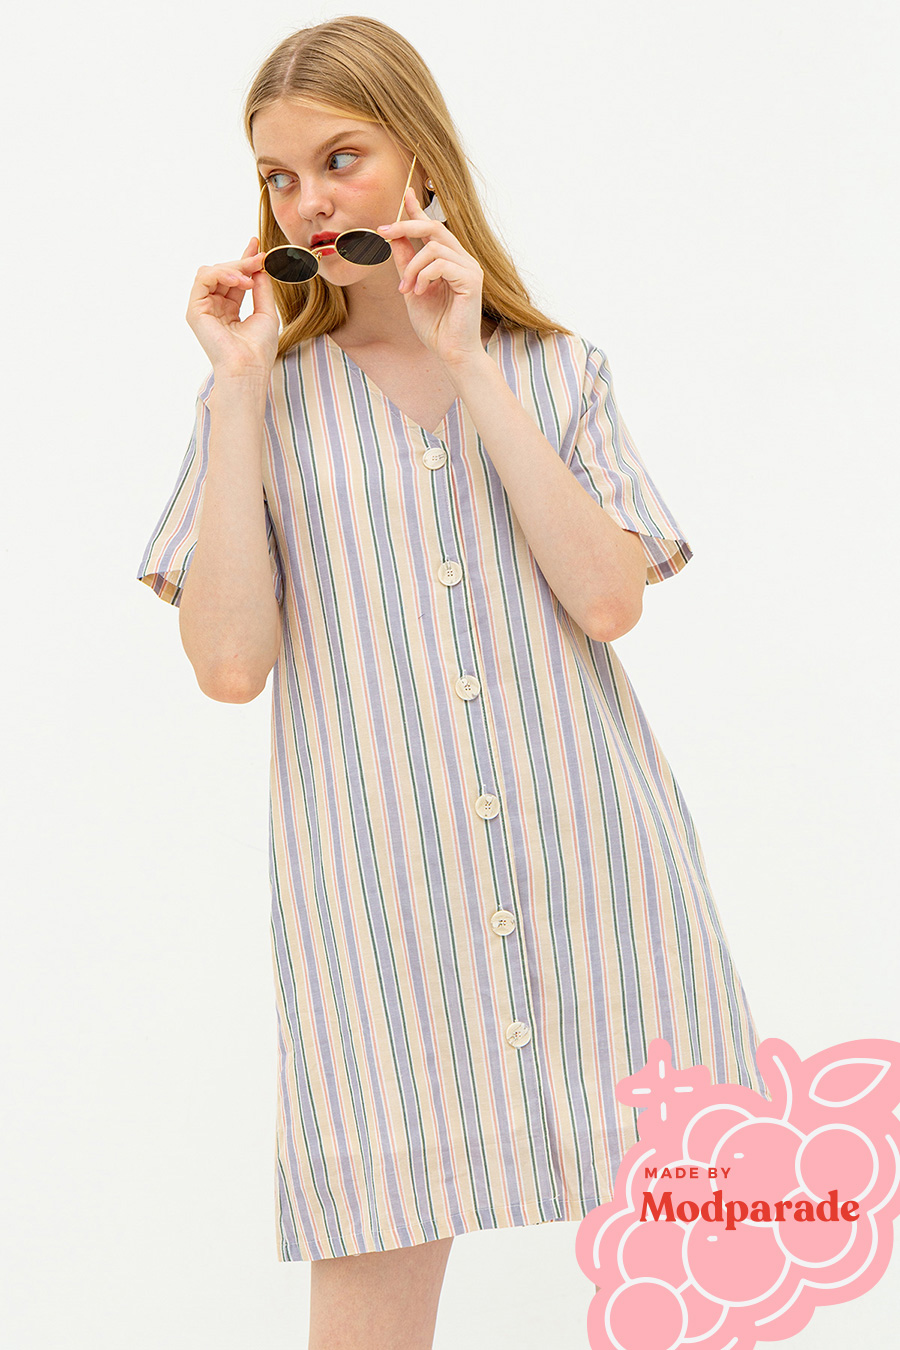 MILLA DRESS - VANILLA STRIPE [BY MODPARADE]